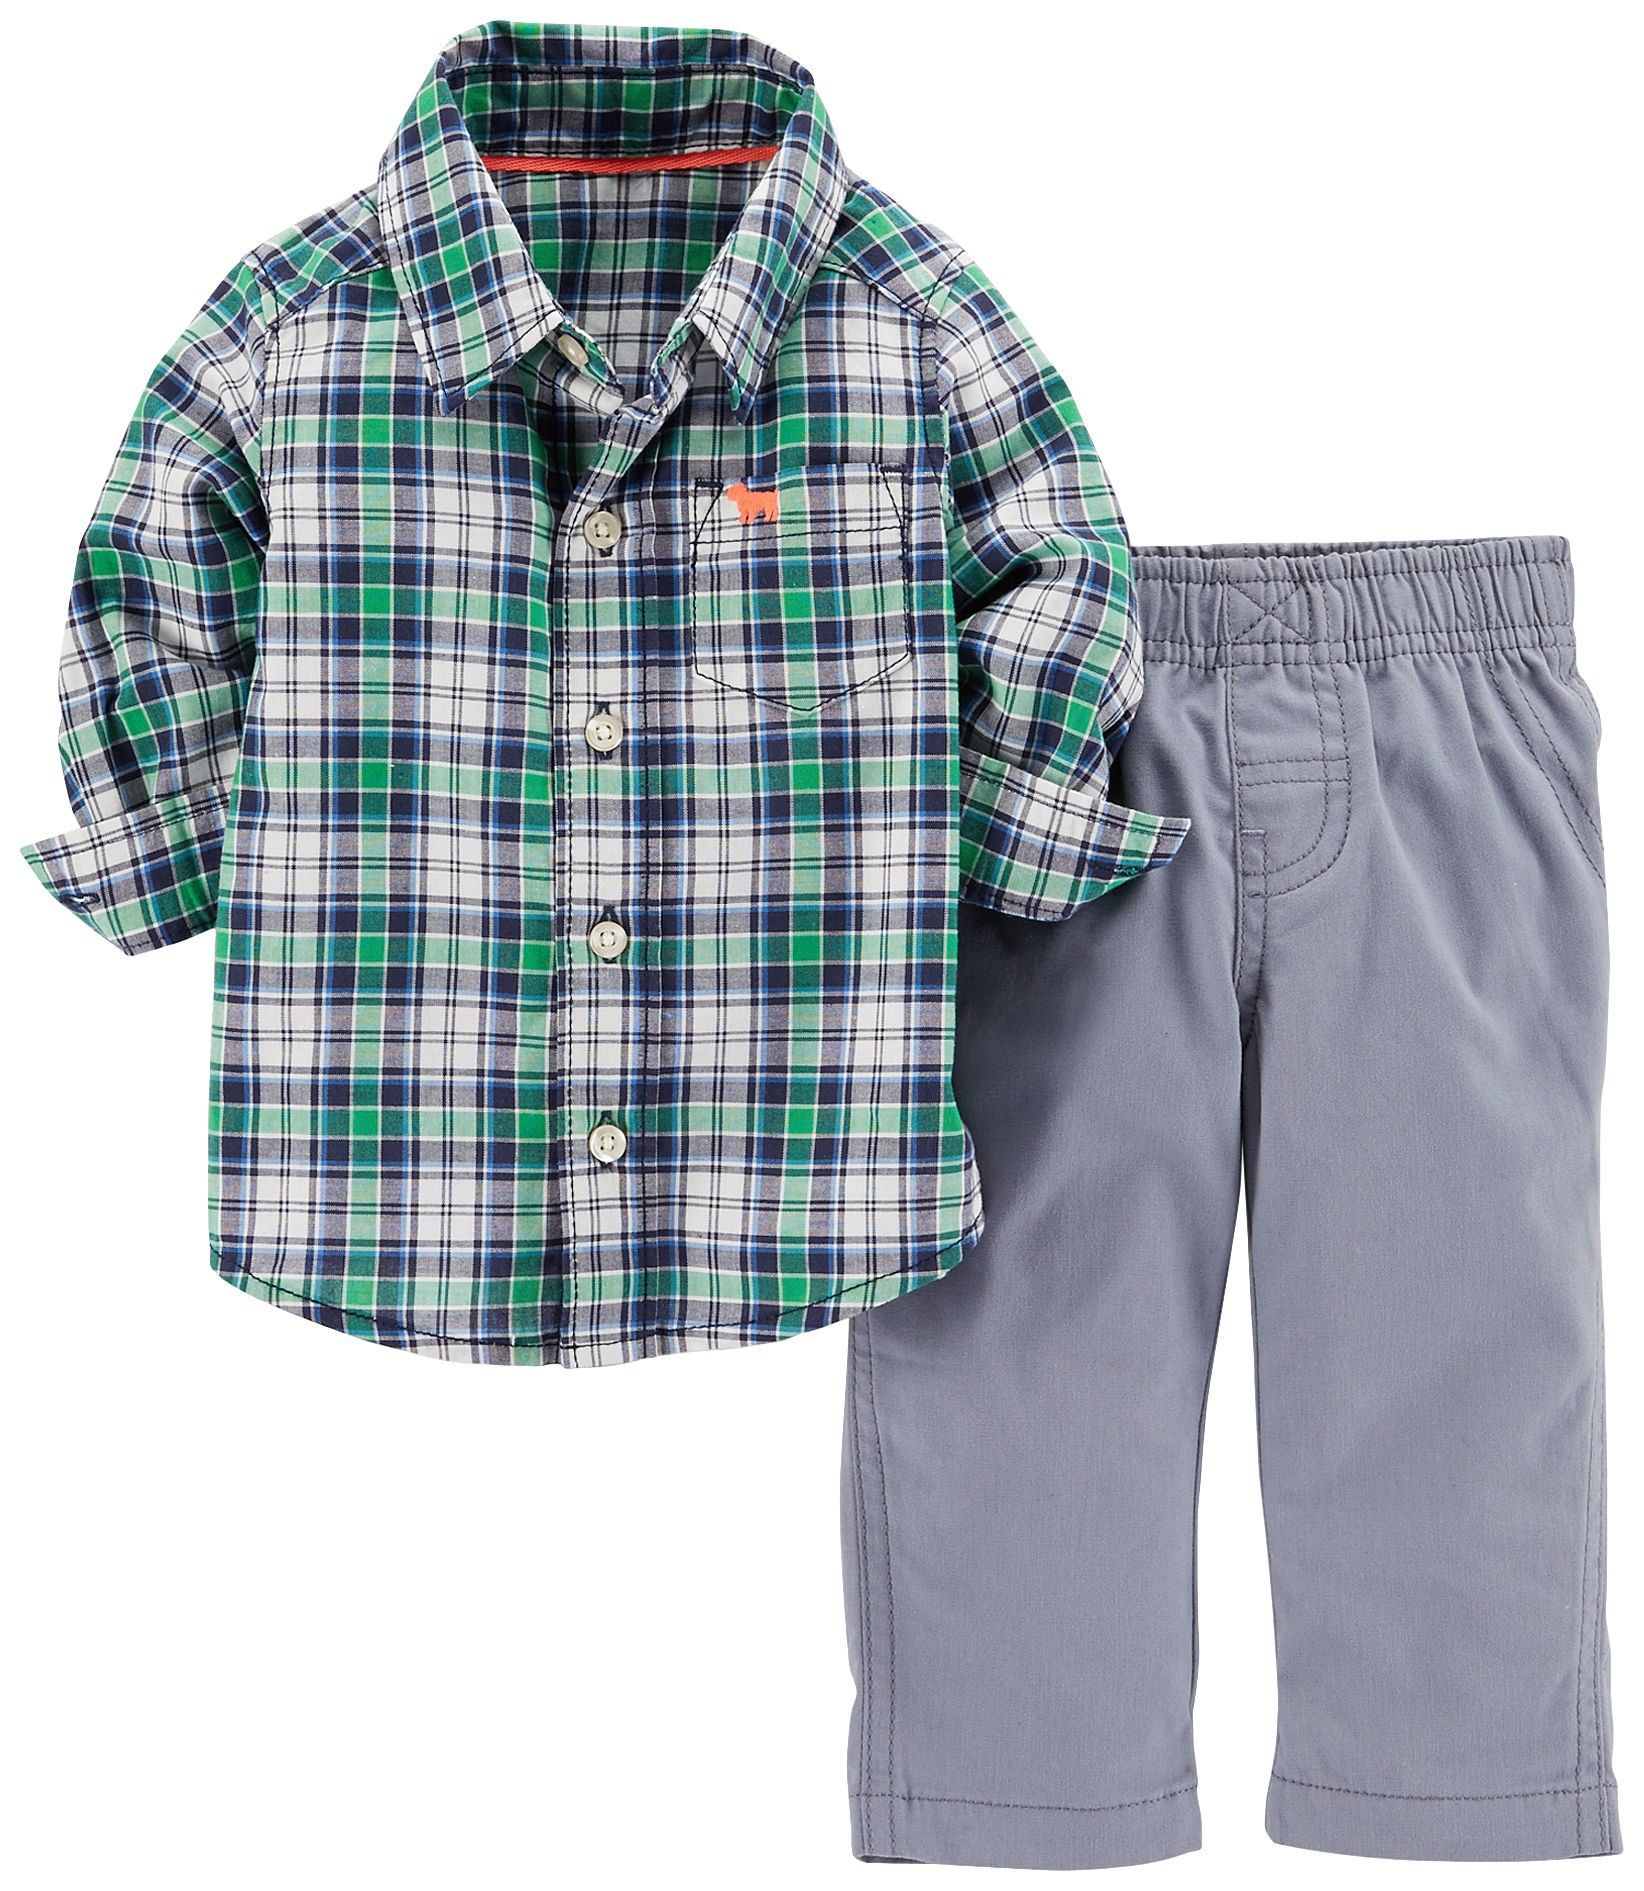 0e406146c Carters Baby Boys 2 Piece Pant Set Baby Green Plaid 12 Months *** Click  image to review even more details. (This is an affiliate link).